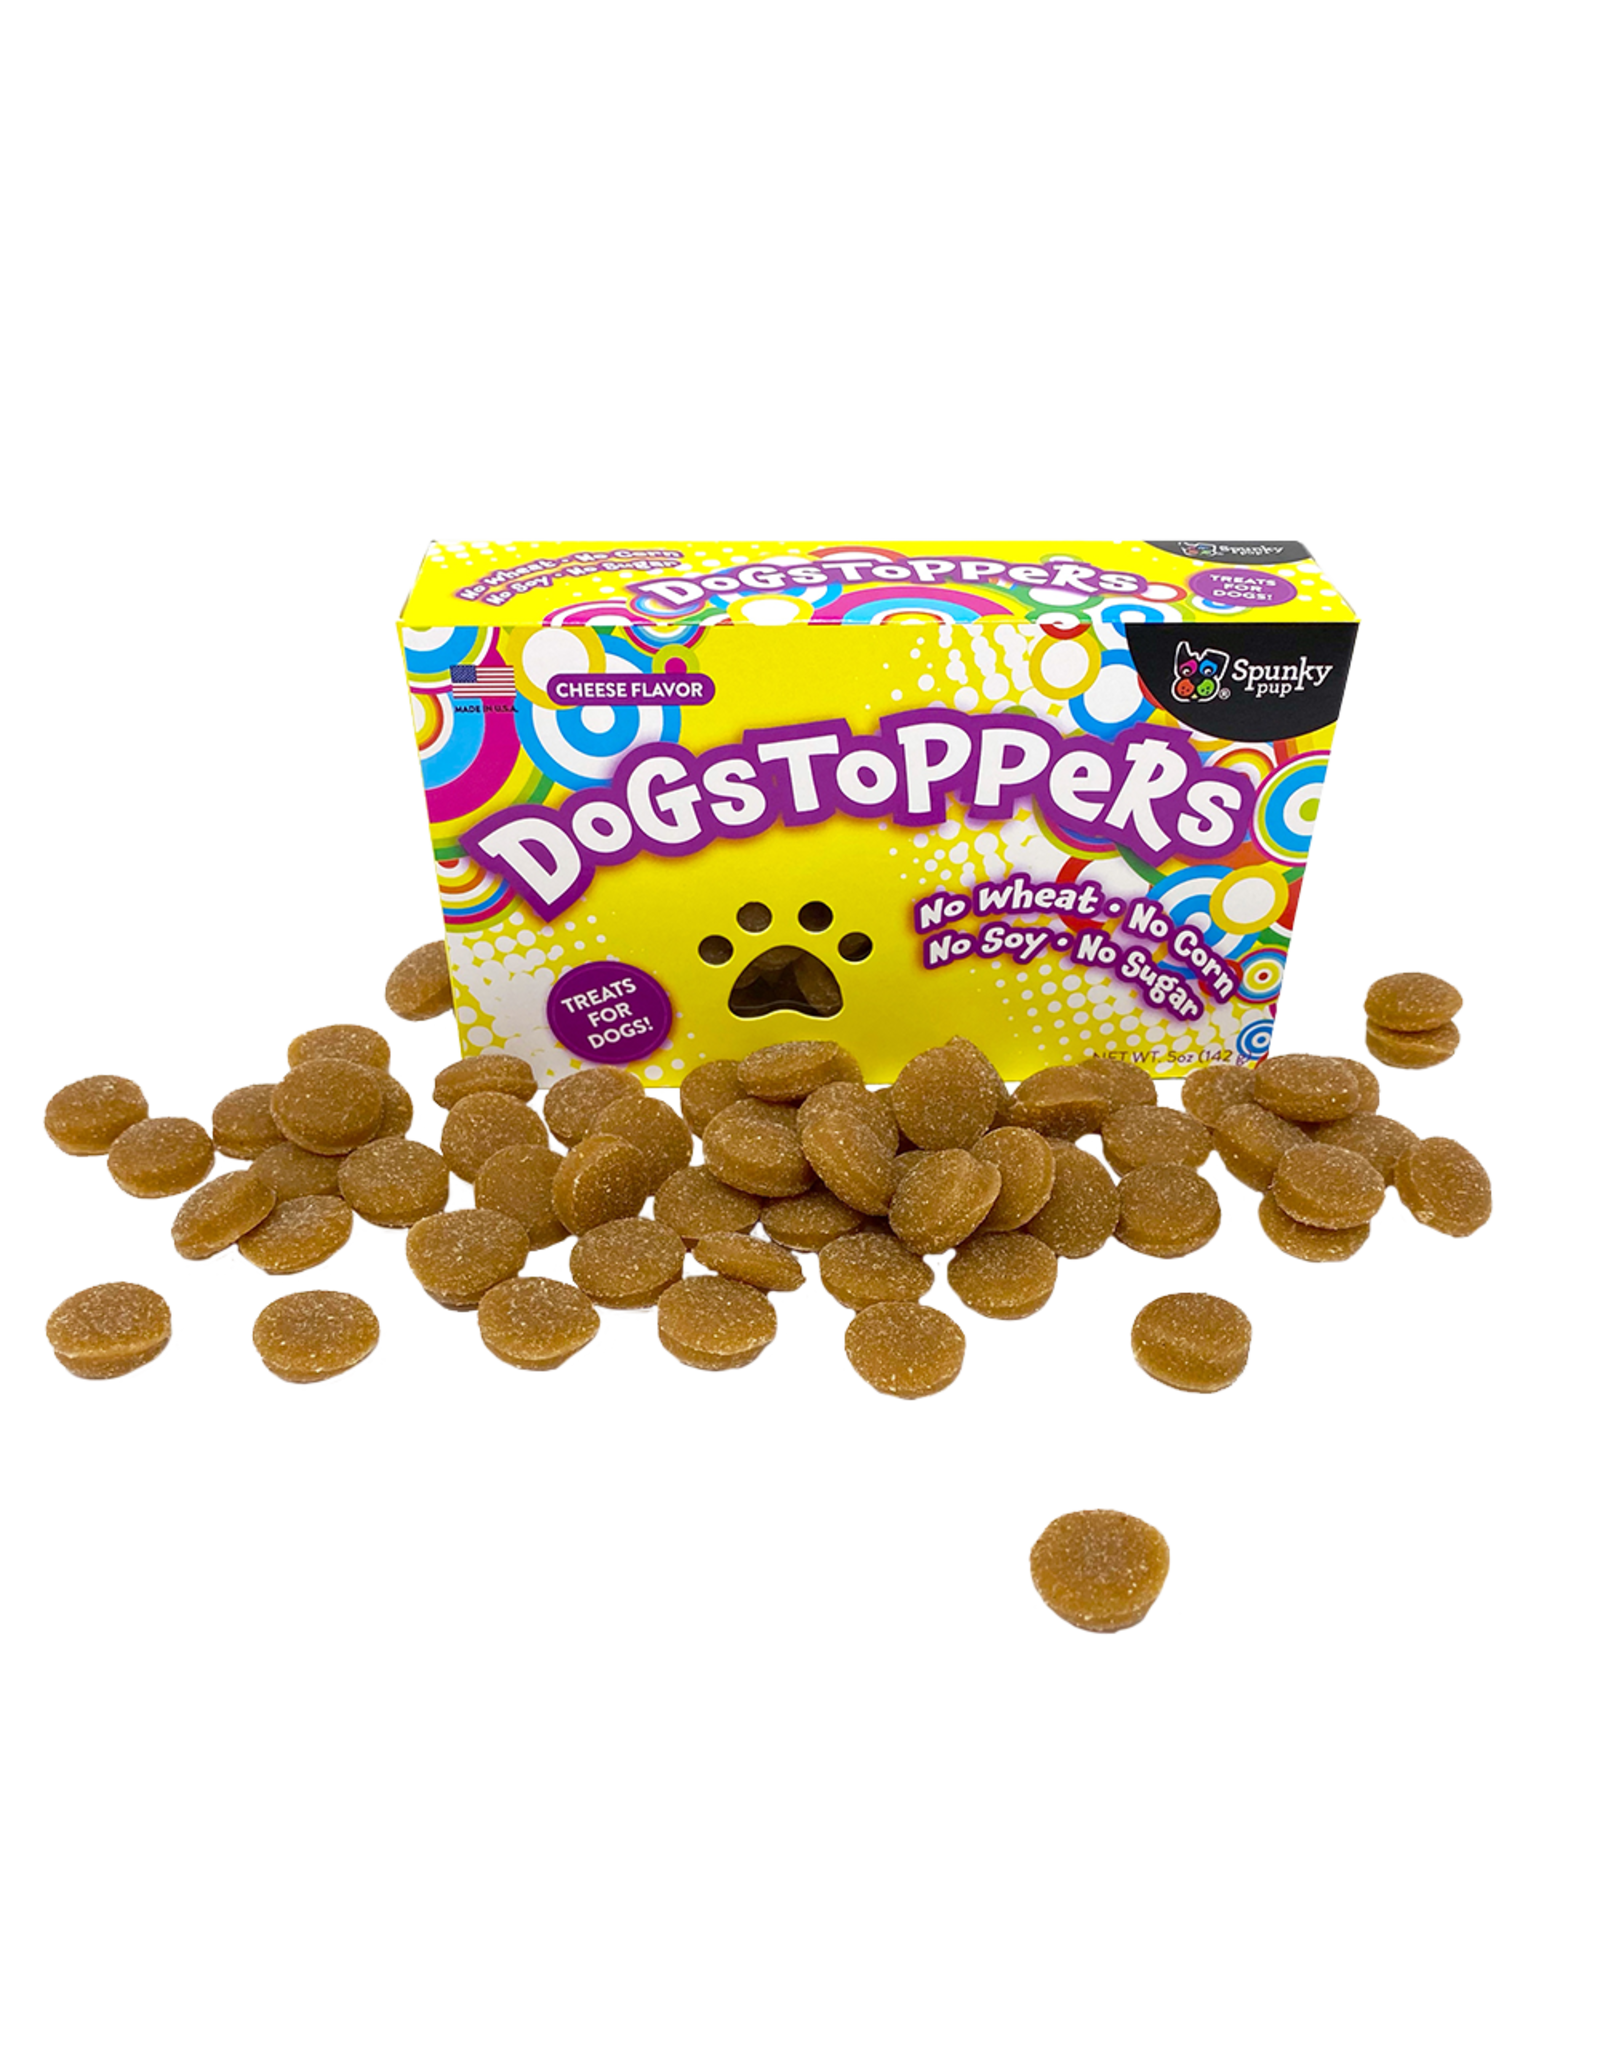 Spunky Pup Spunky Pup Dog Treats- Dogstoppers Cheese 5oz